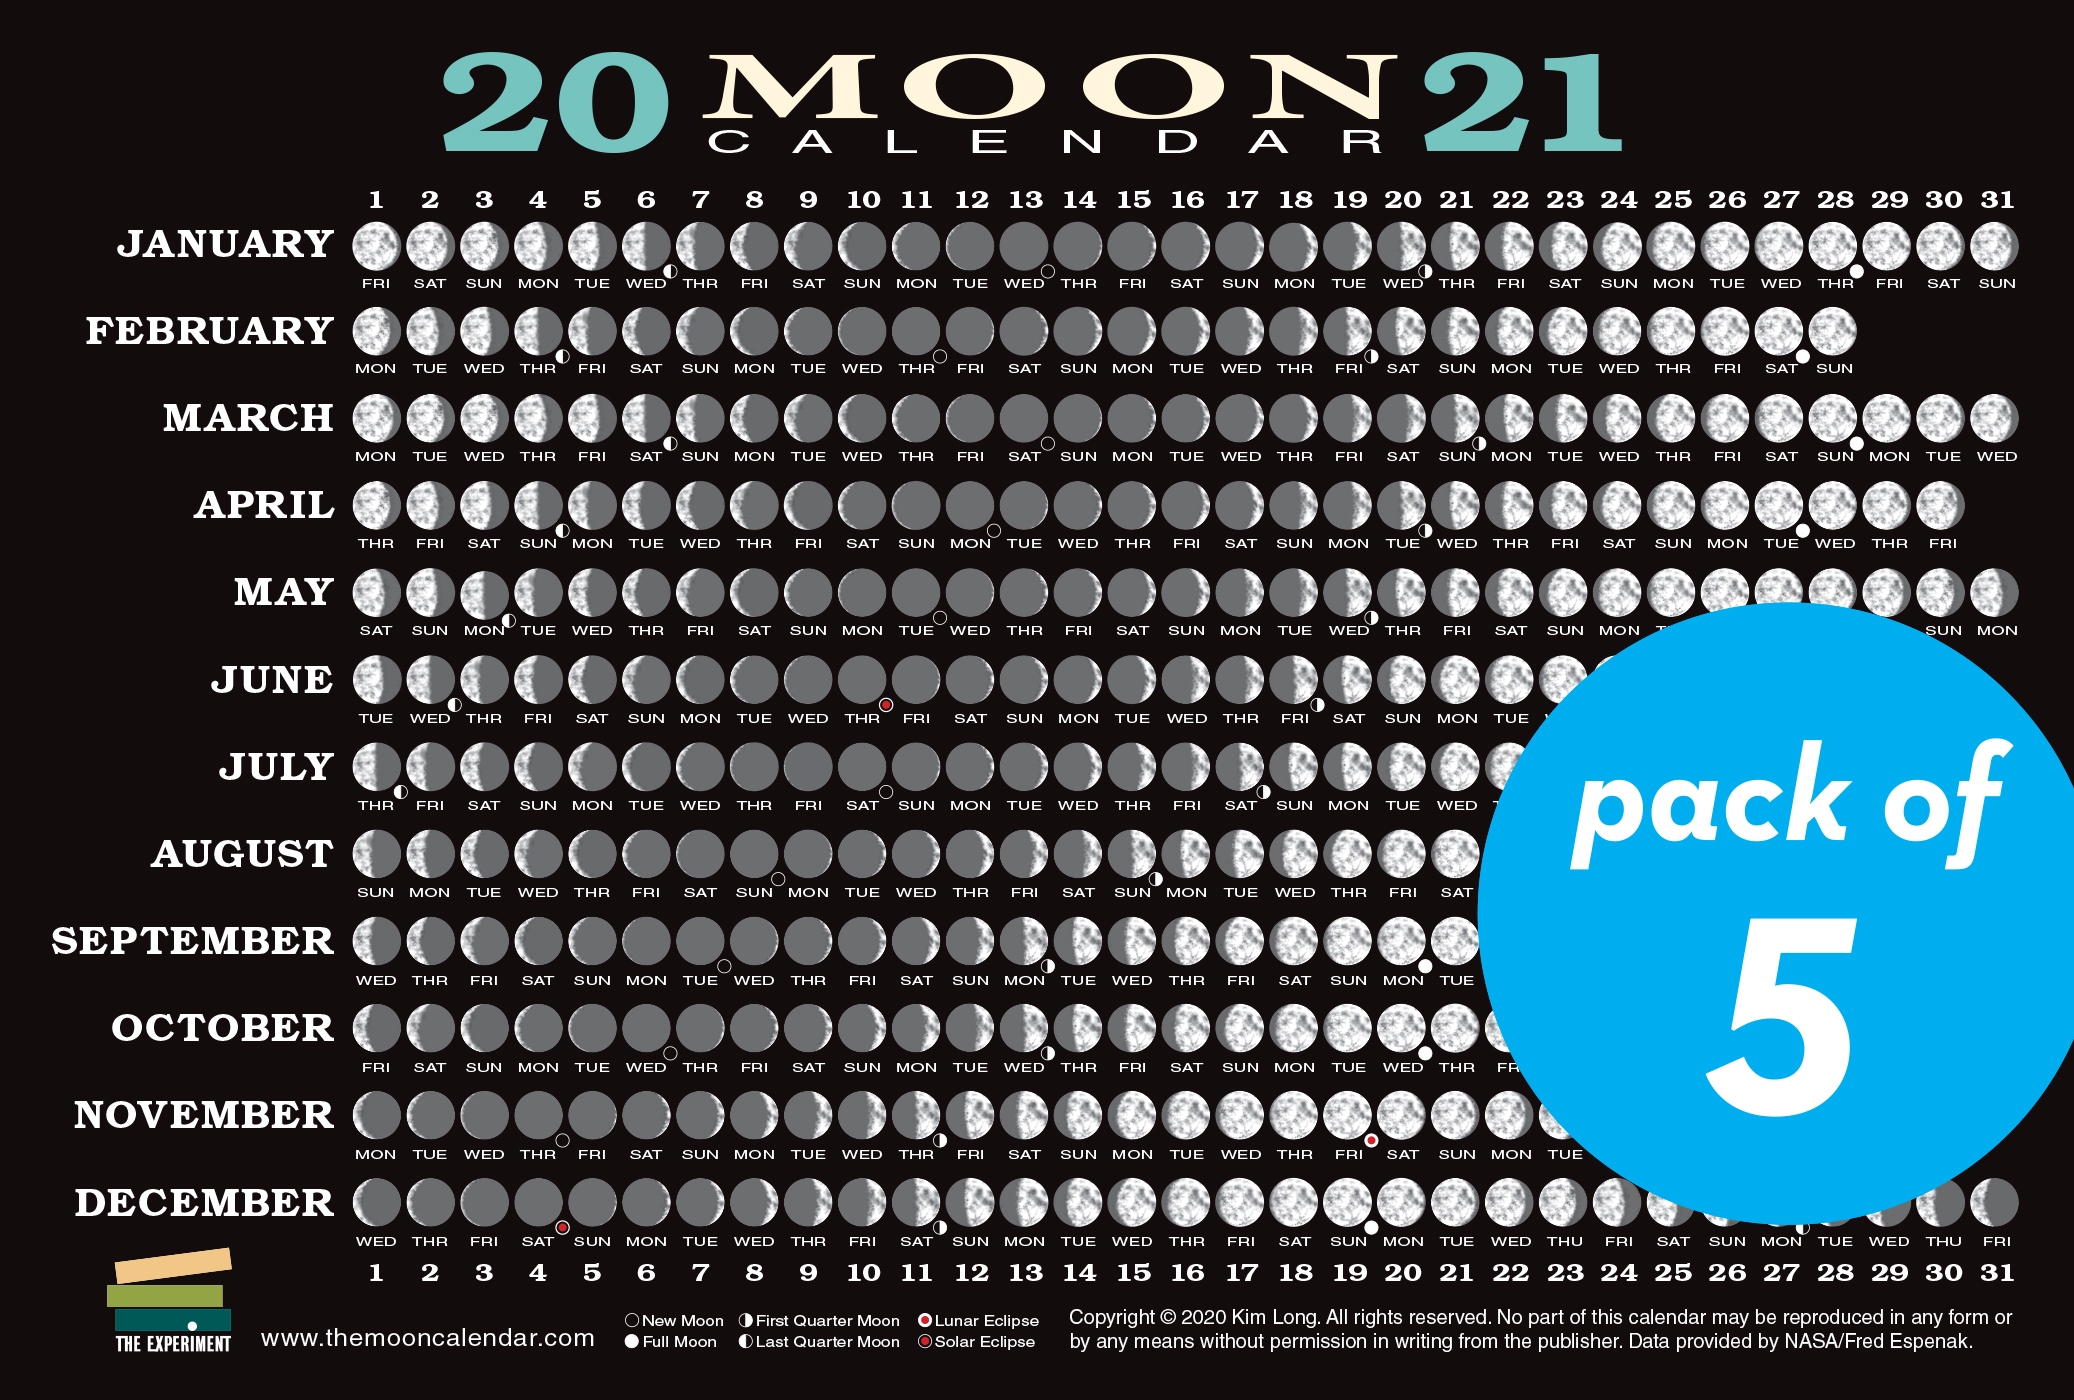 2021 Moon Calendar Card (5 pack)